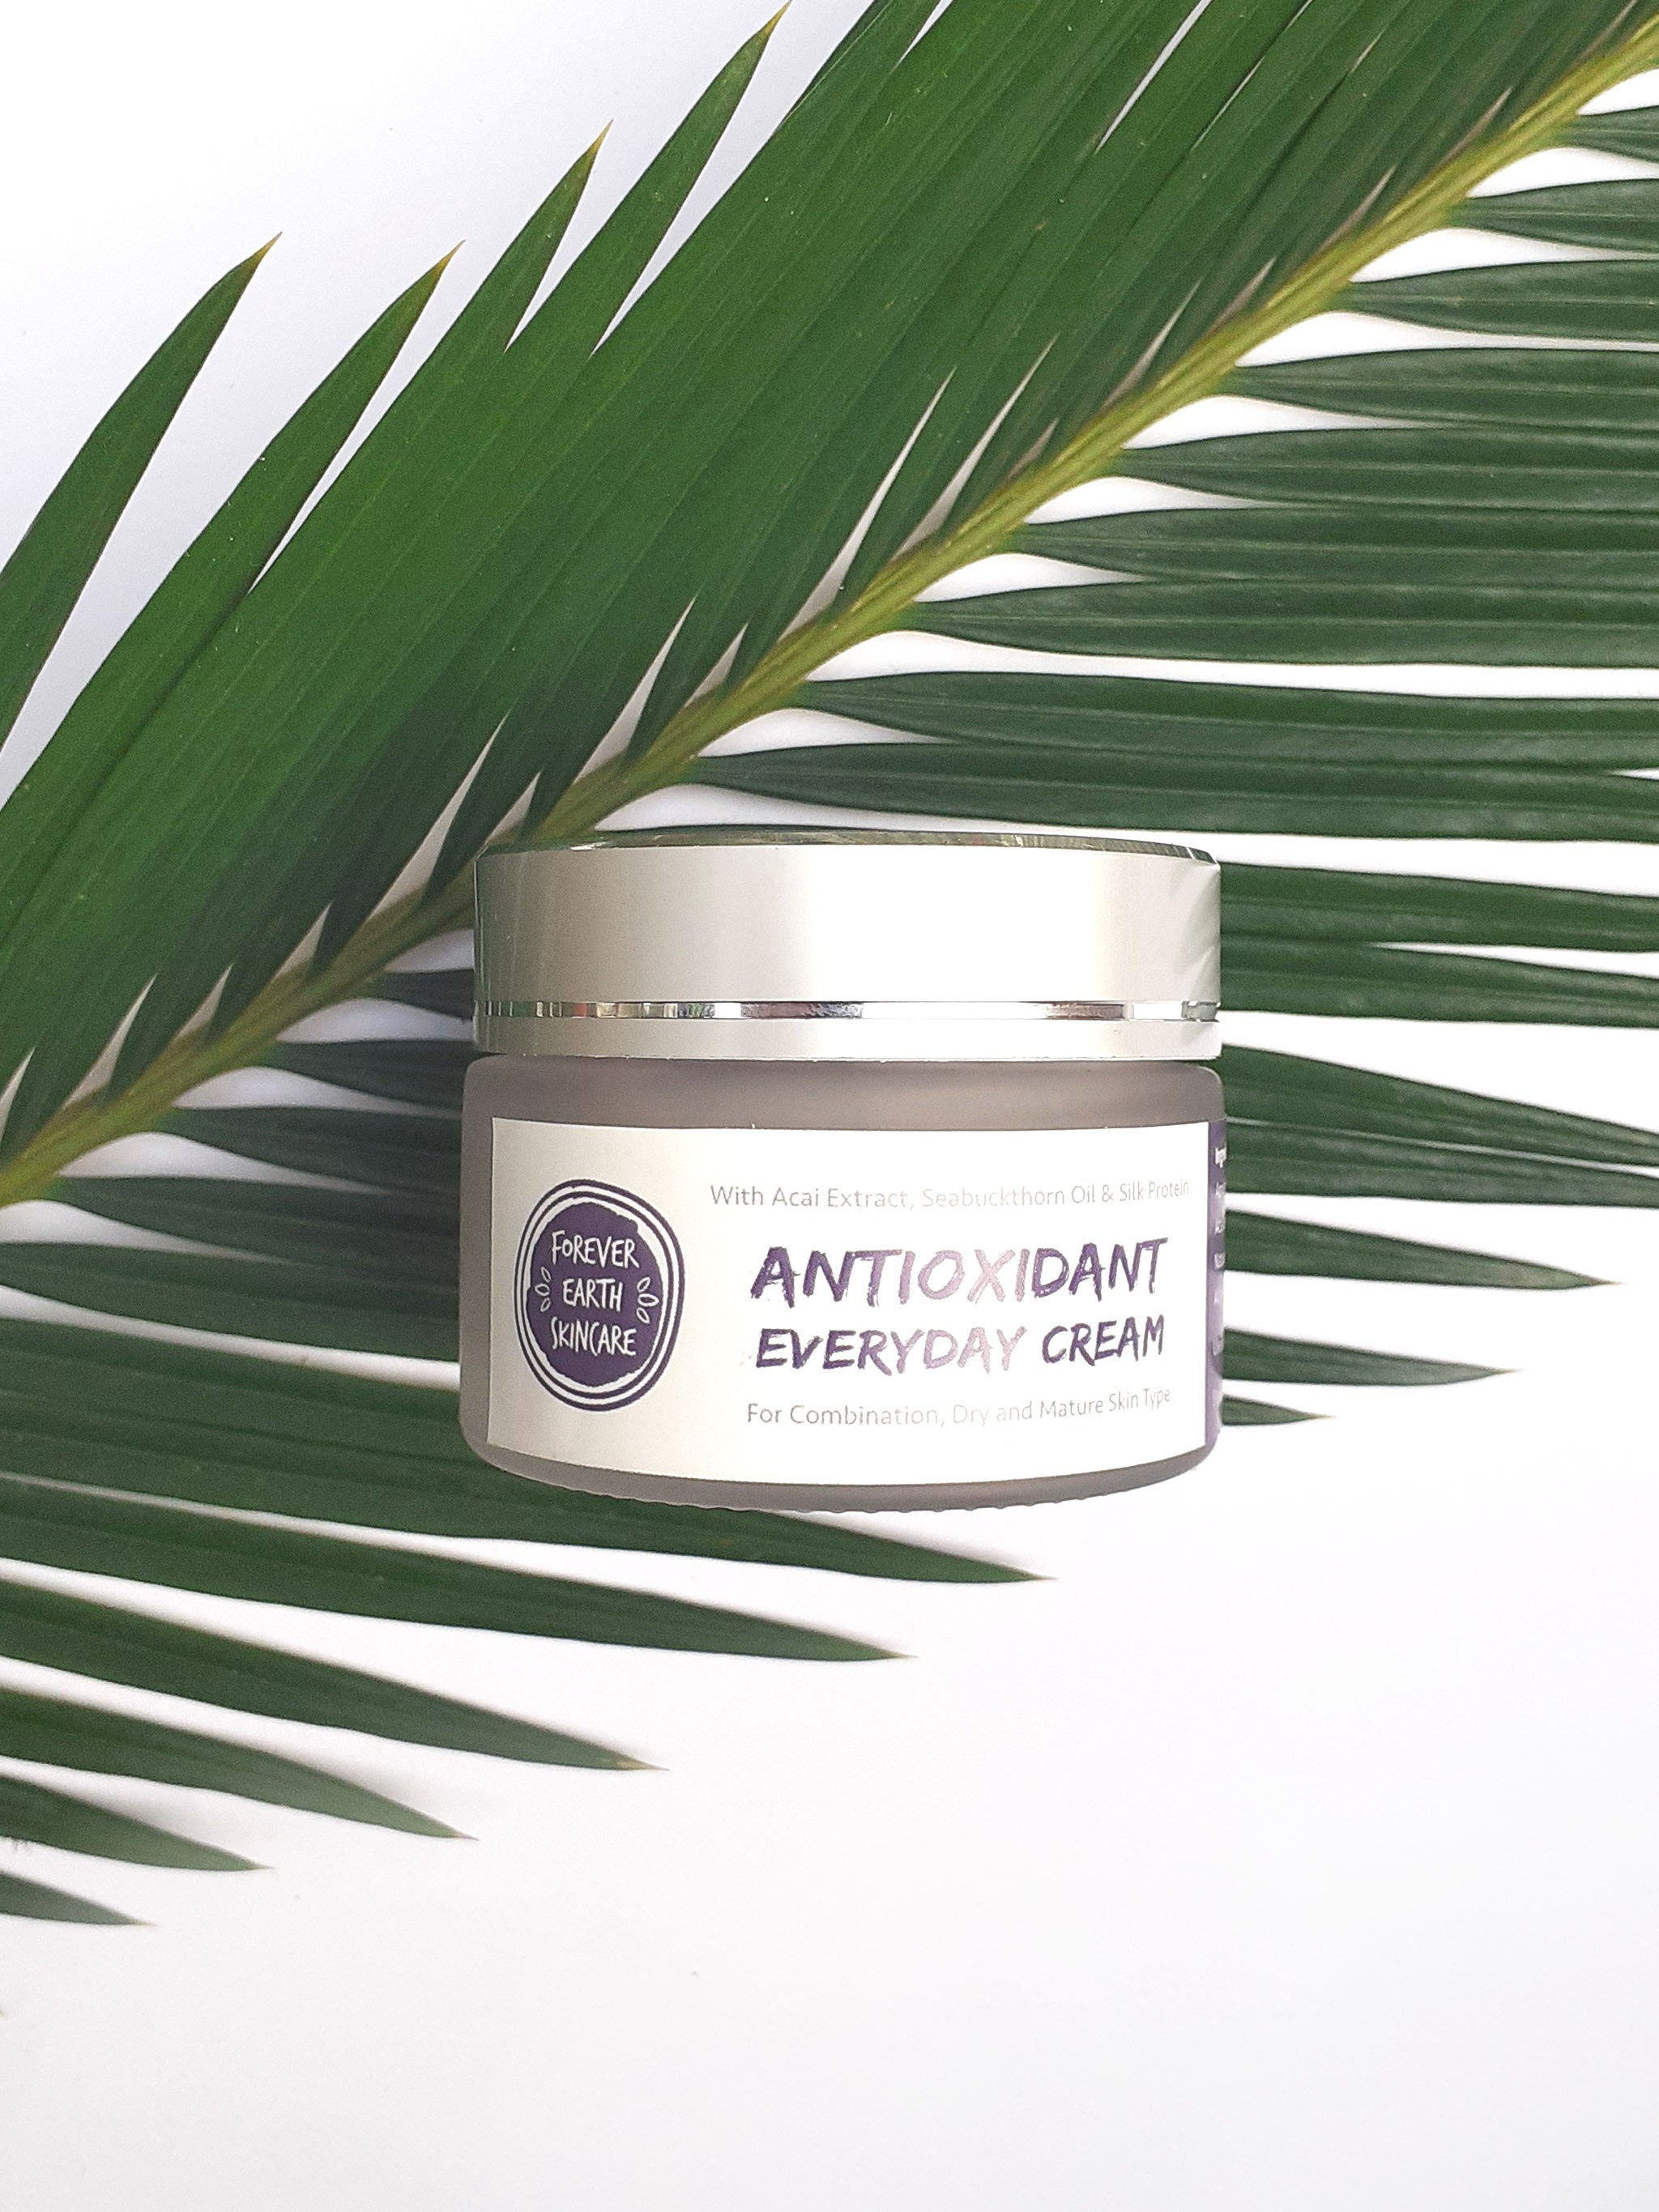 Anti-oxidant Everyday Cream